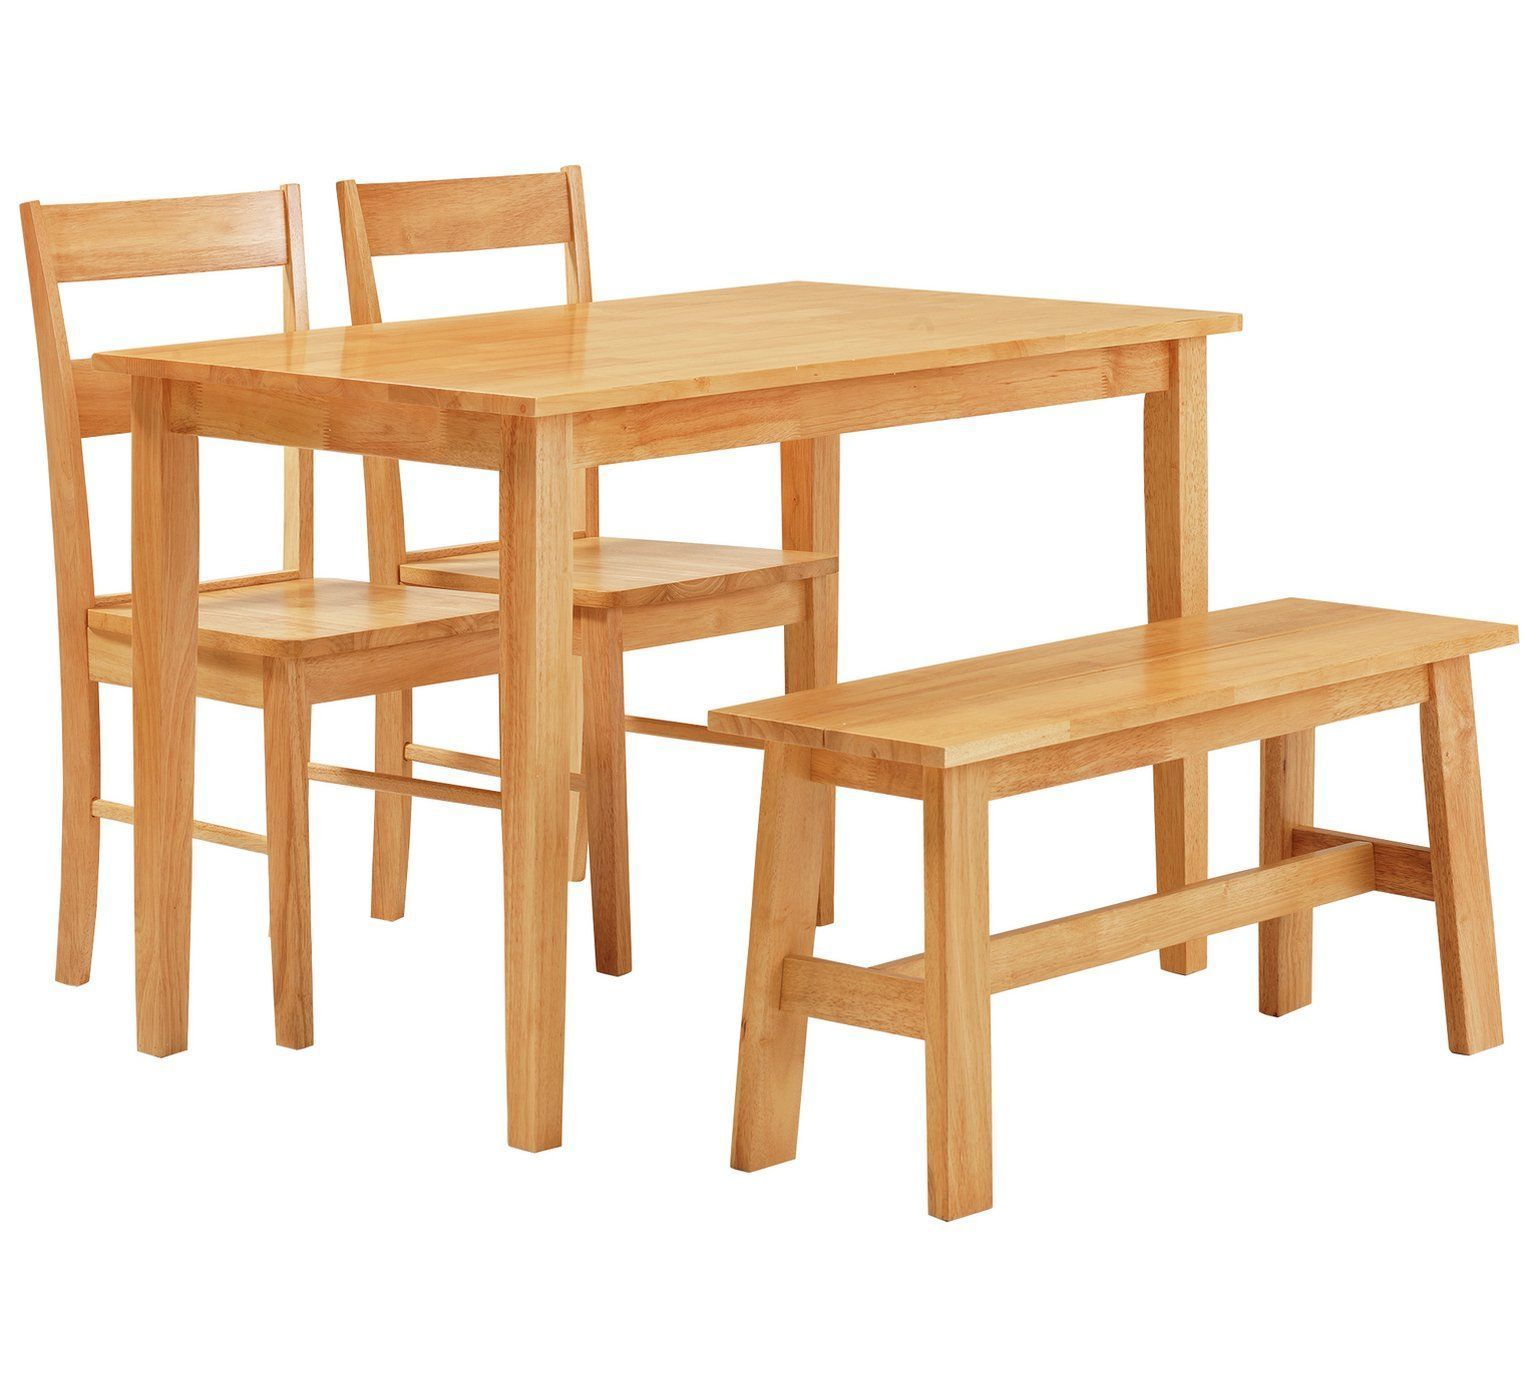 Buy Collection Chicago Dining Table, Bench & 2 Chairs